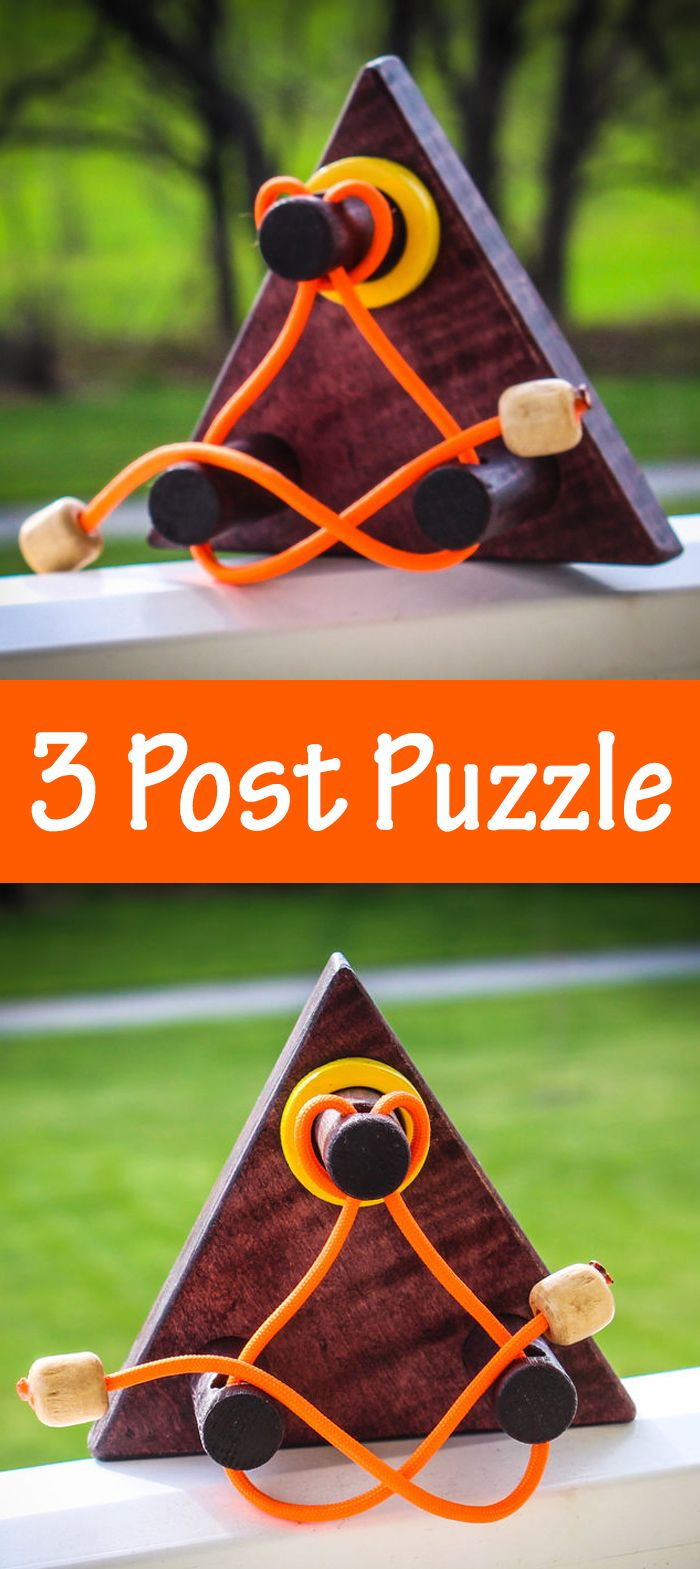 This is a fun puzzle that is pretty easy to make and super fun to solve!